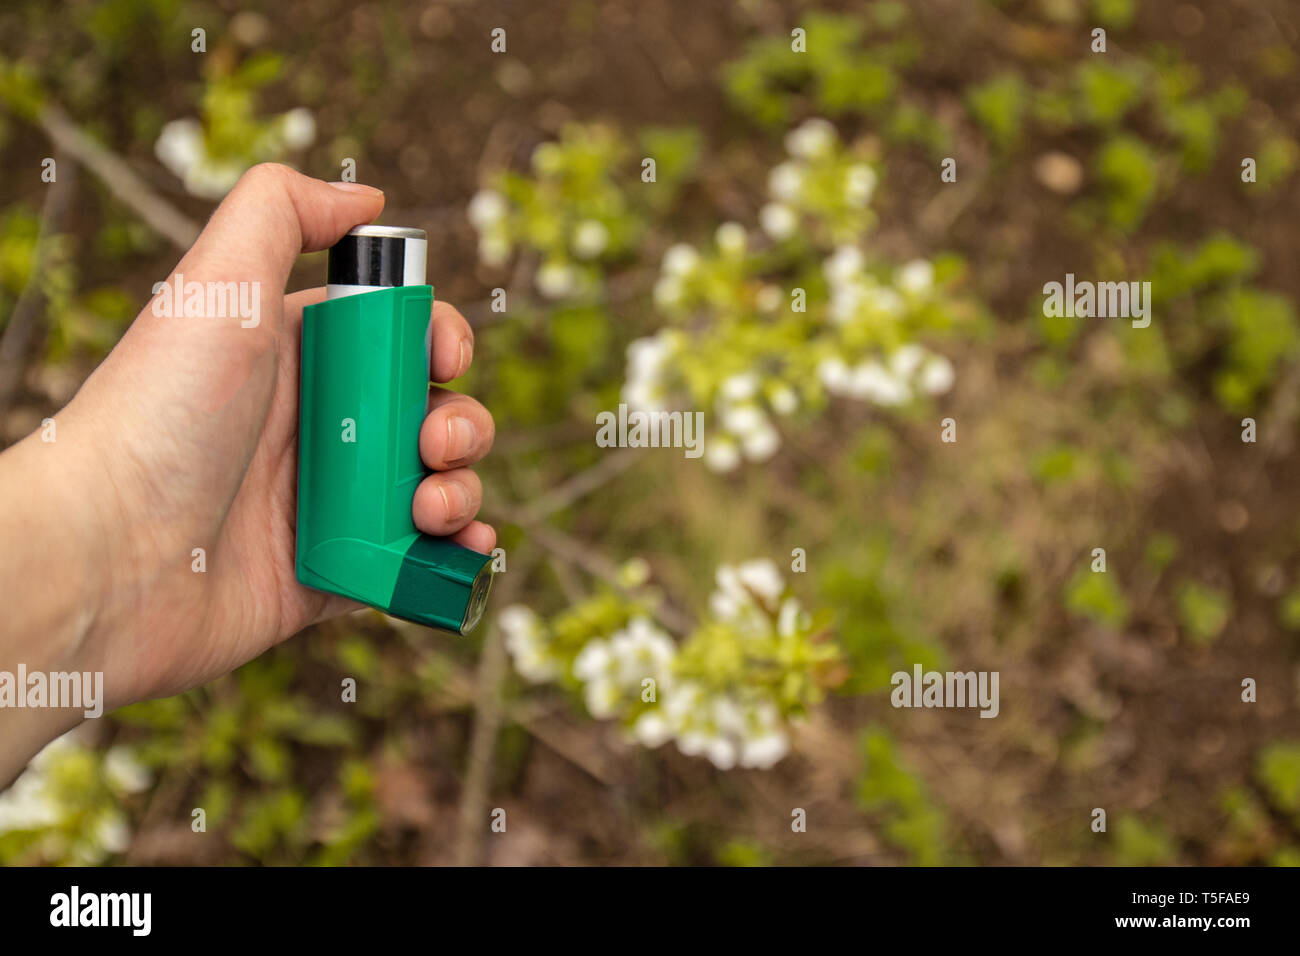 Female asthma inhaler hand near a blossoming tree - Stock Image